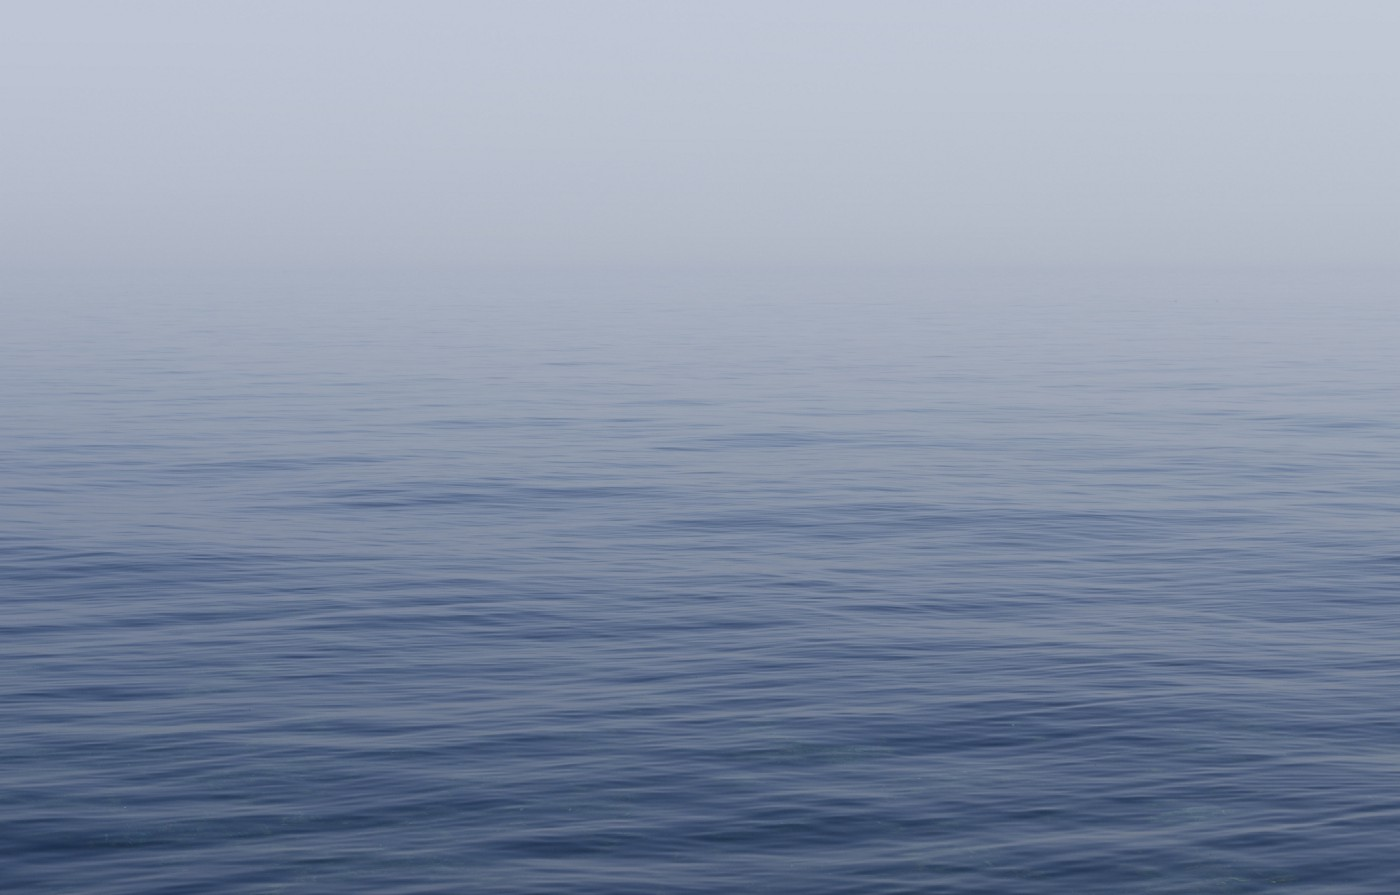 A still ocean. Mysterious and mesmerising.